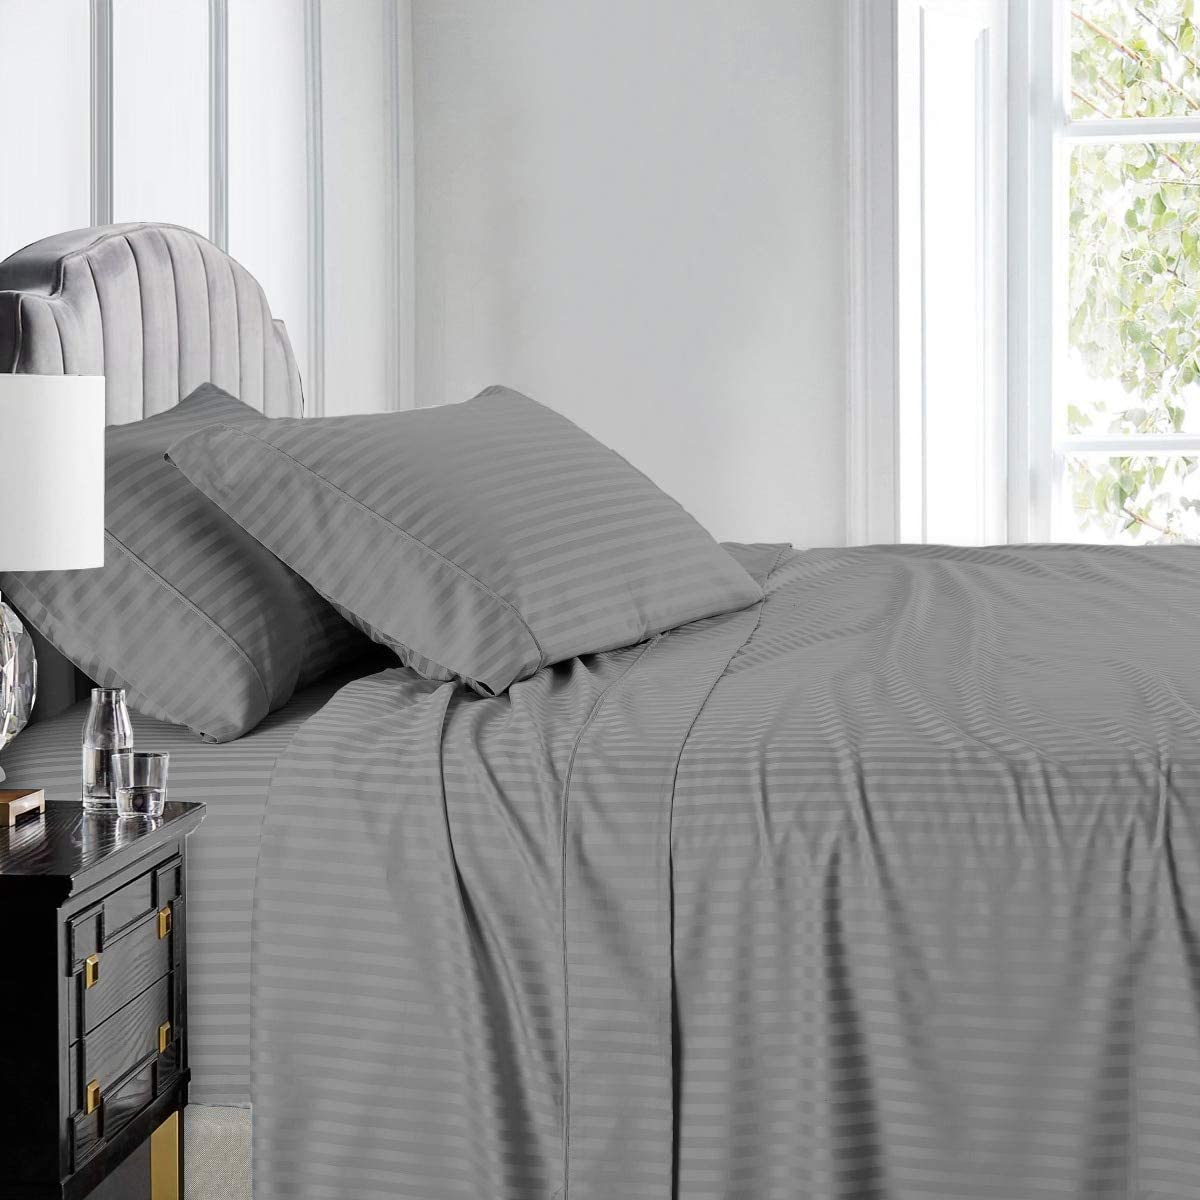 Black Solid Yawn Bedding Oversized Luxurious 600 Thread Count 100/% Egyptian Cotton 1Pc Flat Sheet Top Sheet 132 Inches x 110 Inches Oversized